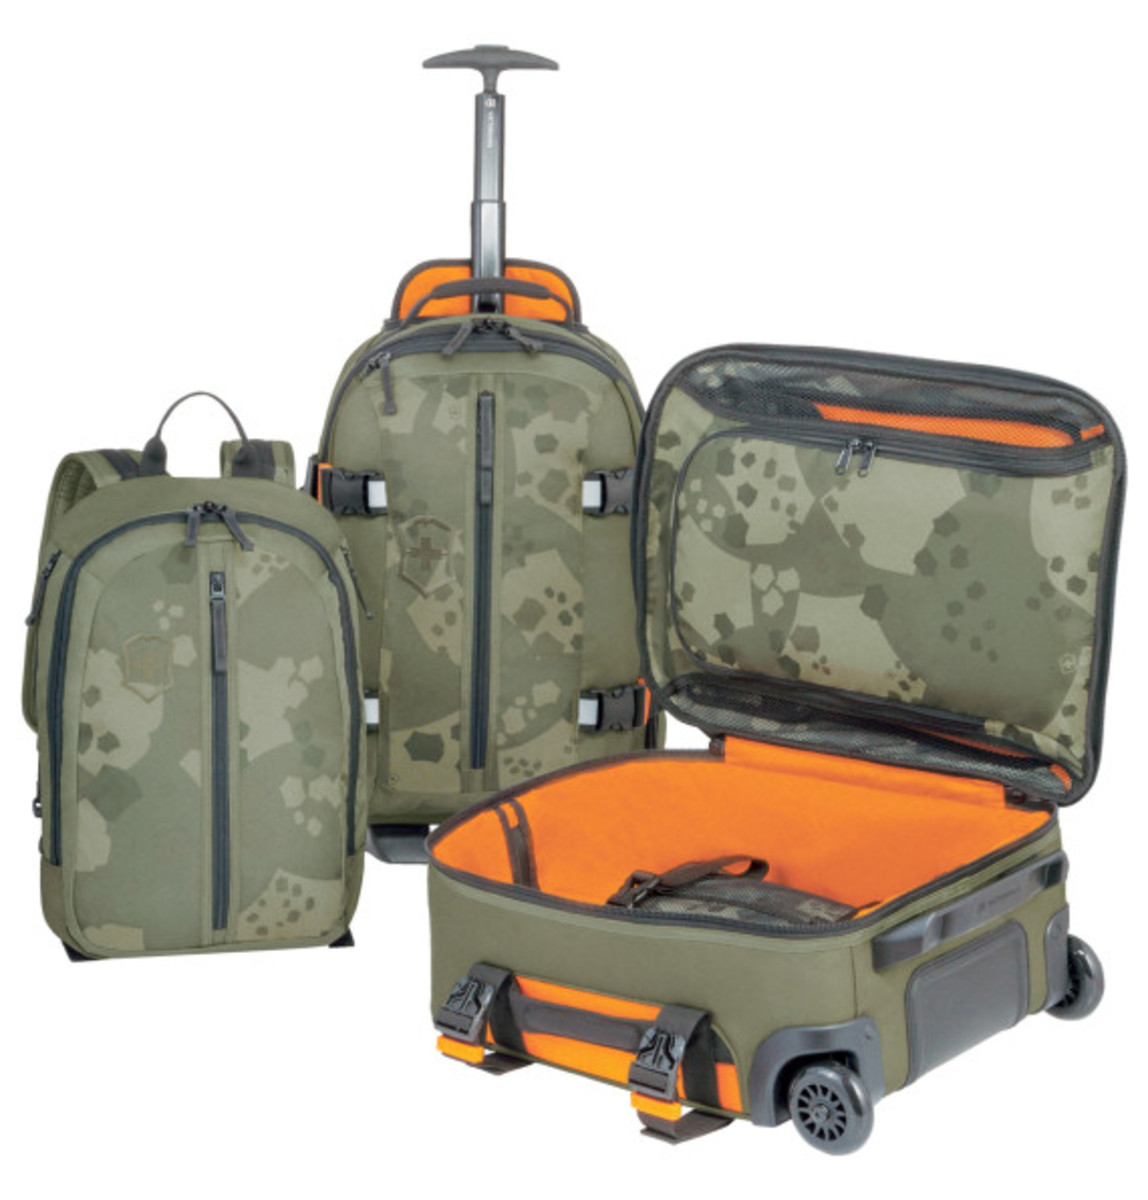 victorinox-limited-edition-travel-pack-06